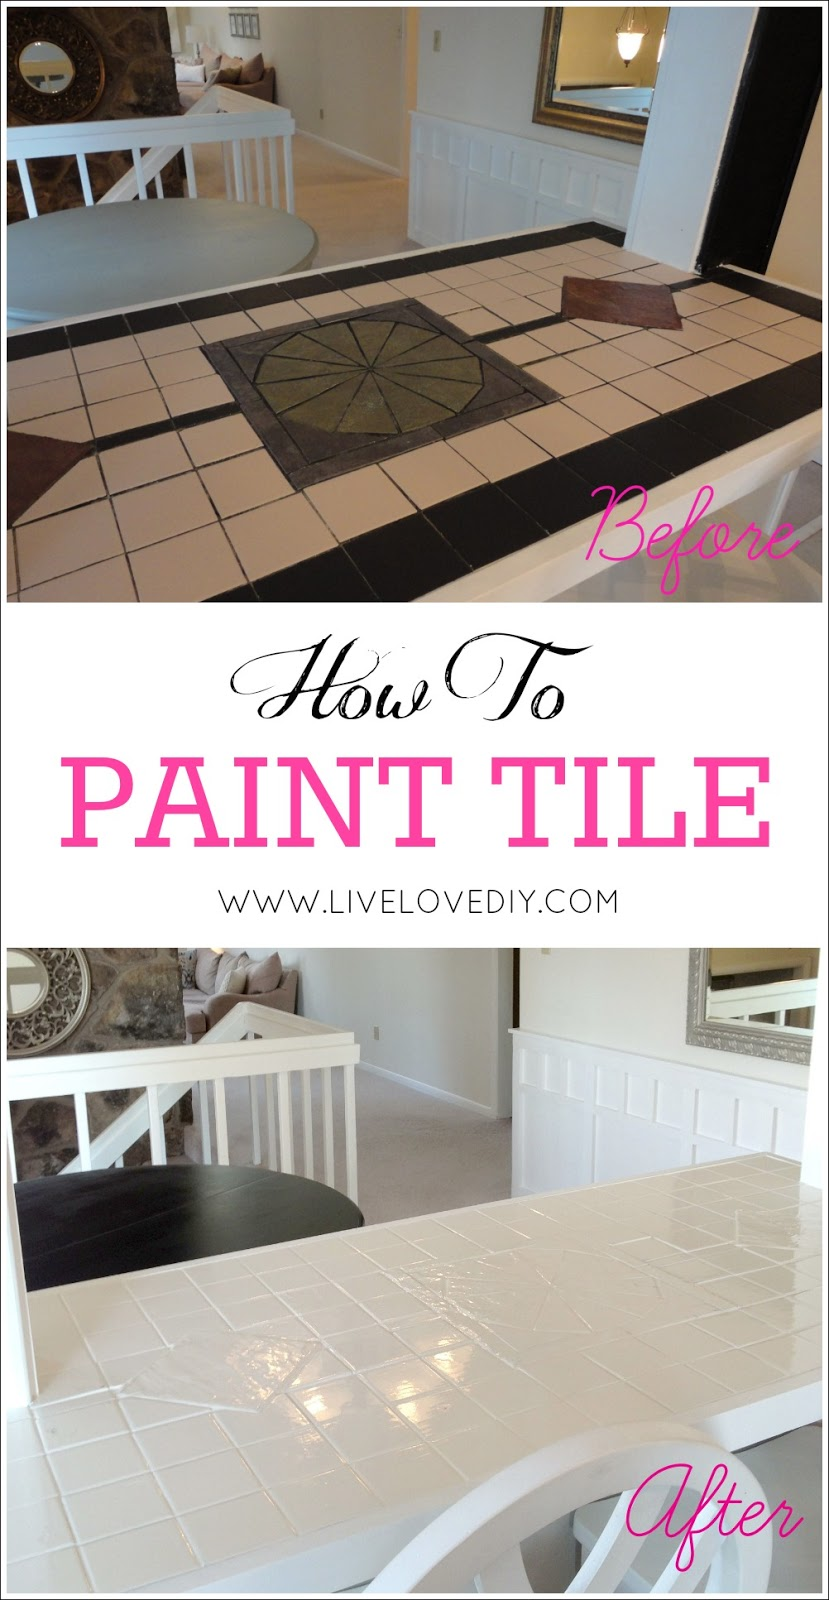 Can kitchen floor tile be painted home painting livelovediy how to paint tile countertops dailygadgetfo Image collections